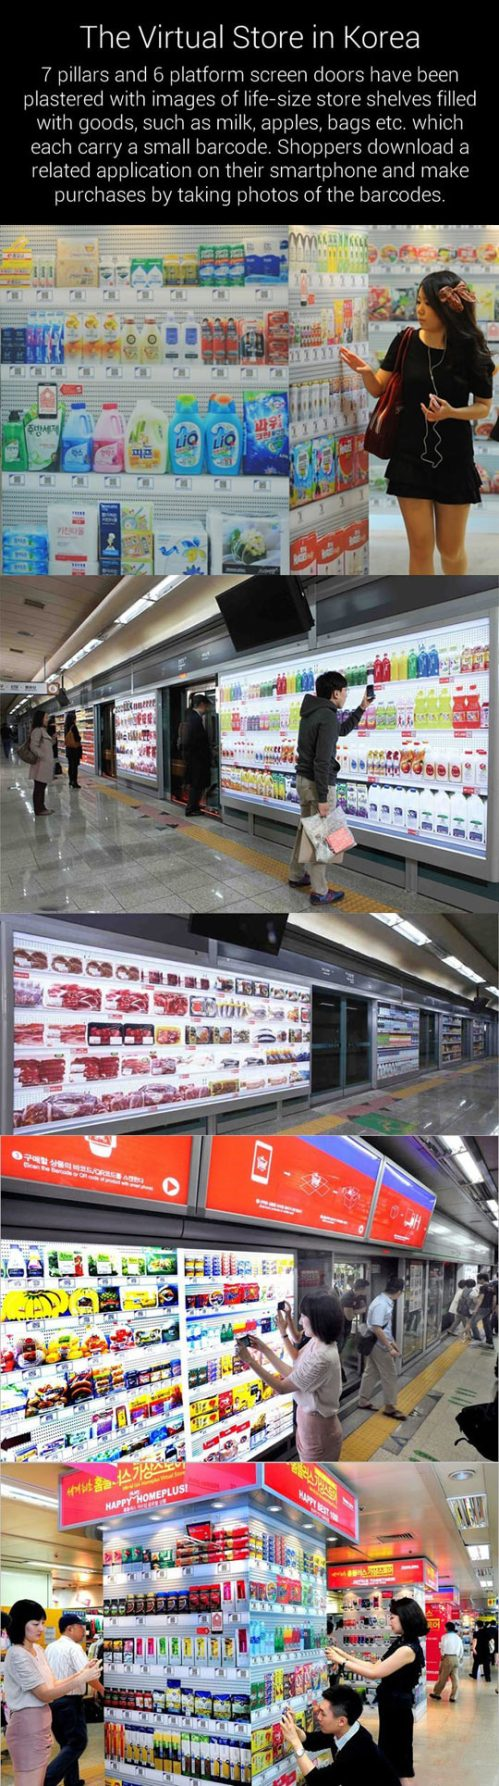 The virtual store in Korea